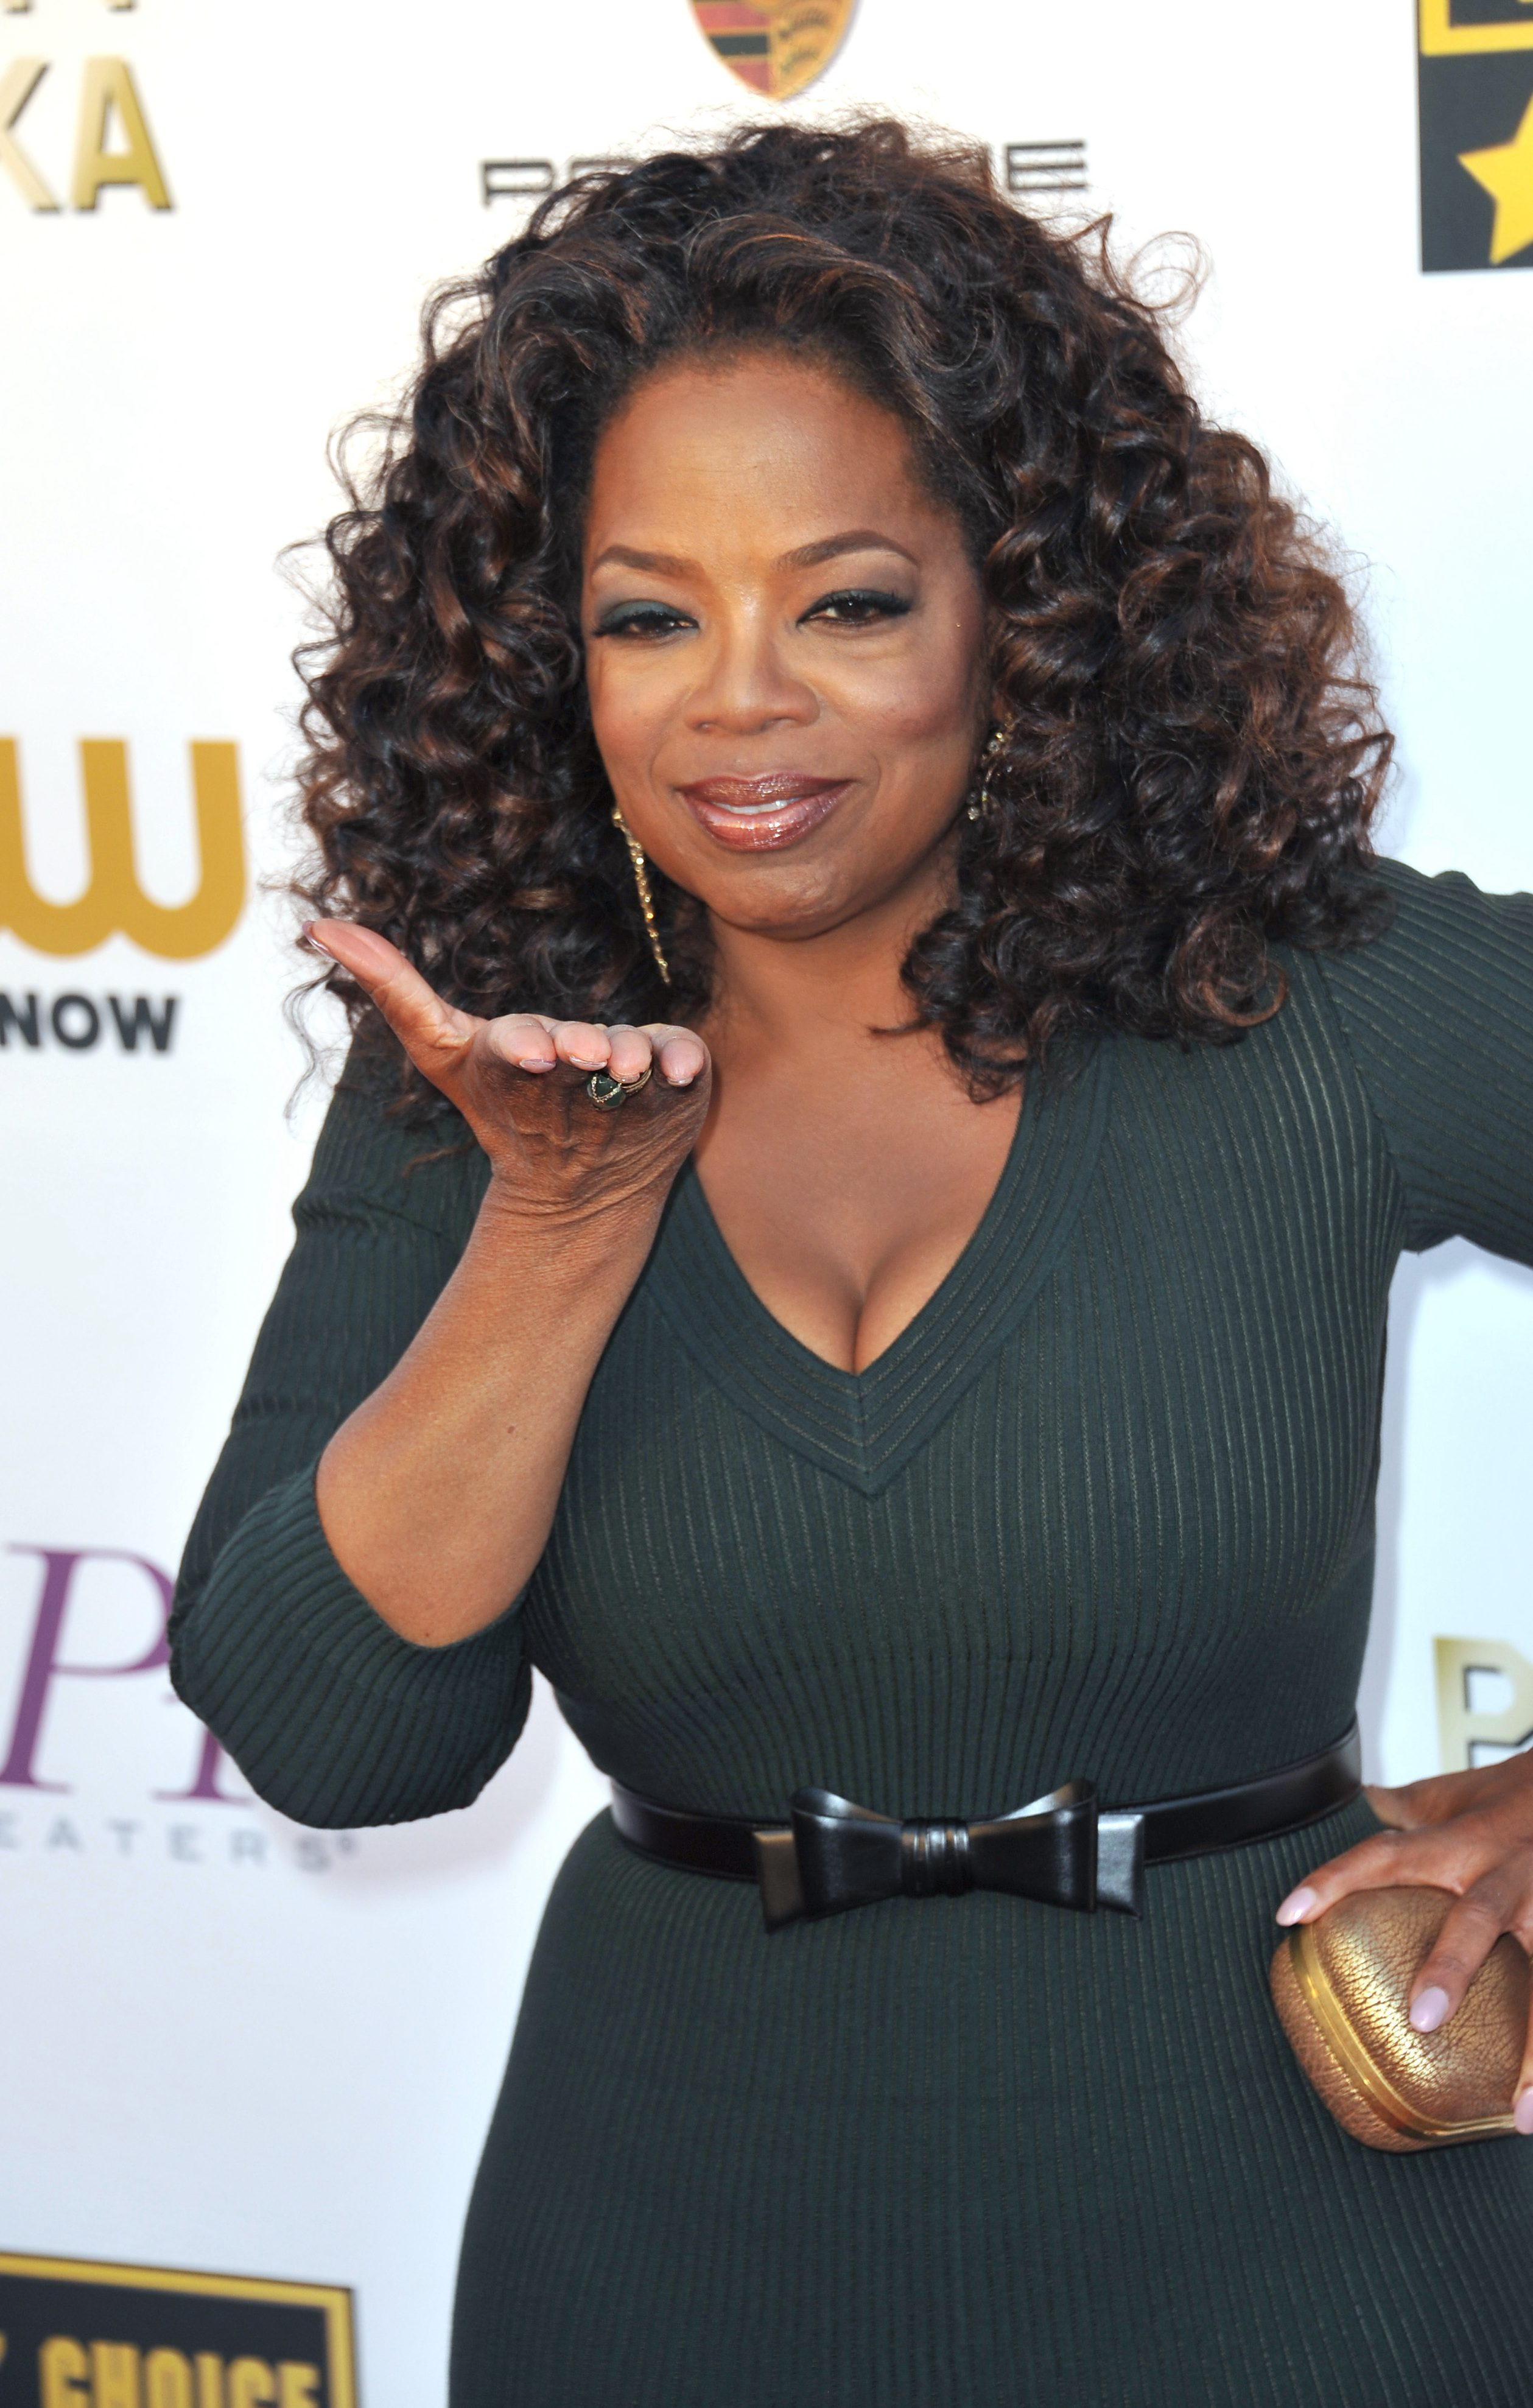 Oprah's Curled Afro Shag